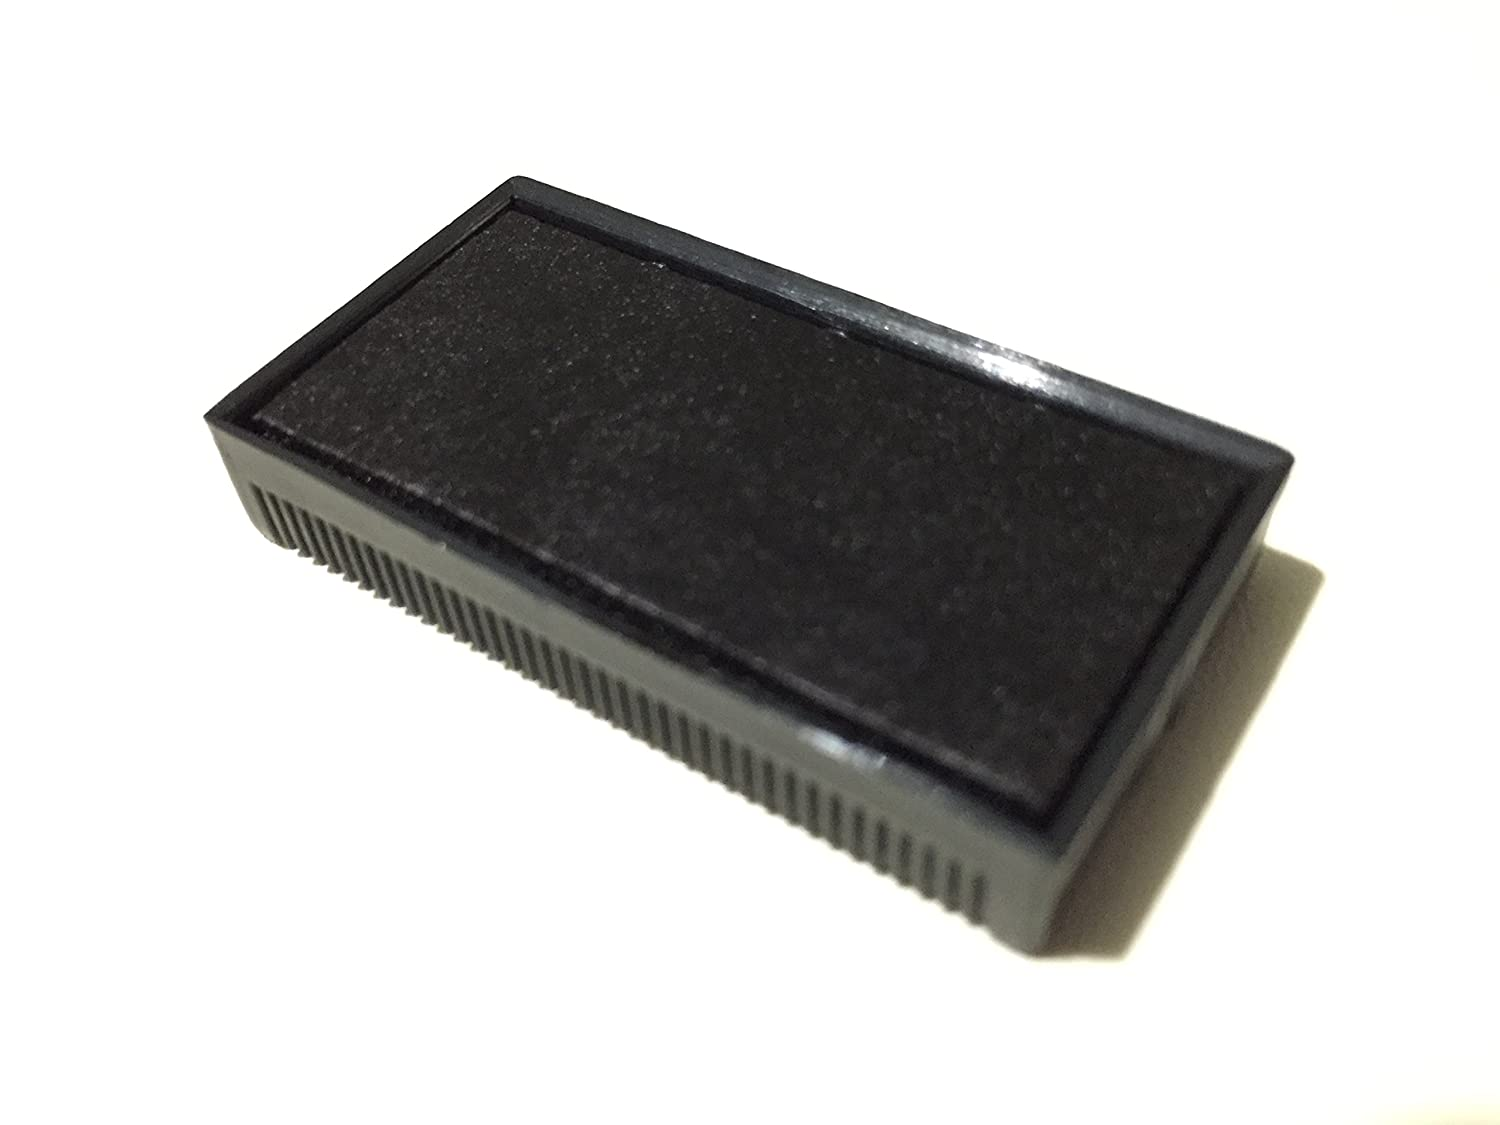 Replacement Ink Pad For Maxstamp SI-10 42x23mm Colour BLACK (SI-10, MX-P1, M4911, M14101, PM20) Best Price Trading